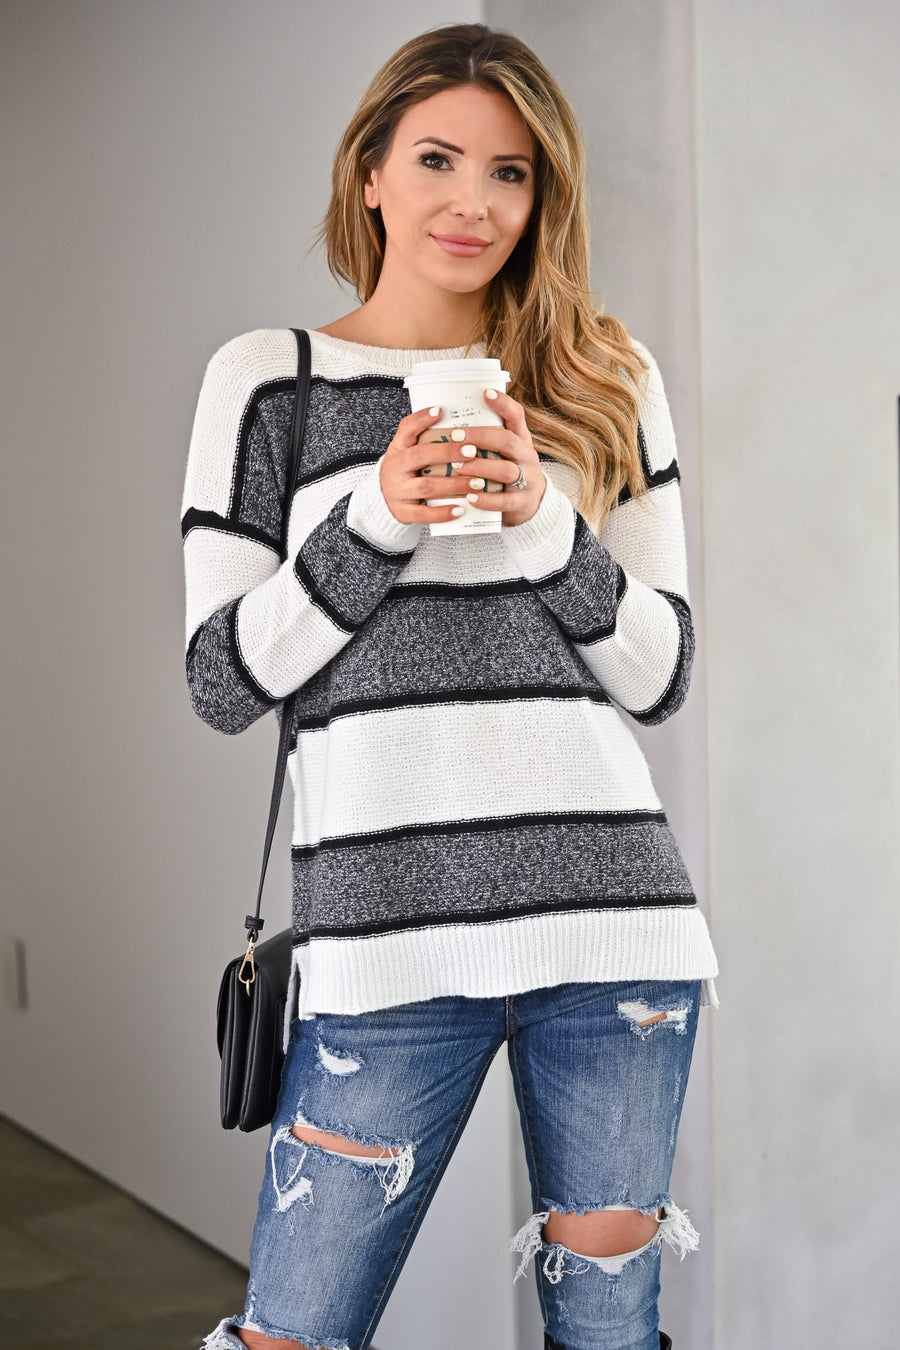 Wouldn't It Be Nice Sweater - White & Charcoal womens trendy thick striped long sleeve cozy fall sweater closet candy side